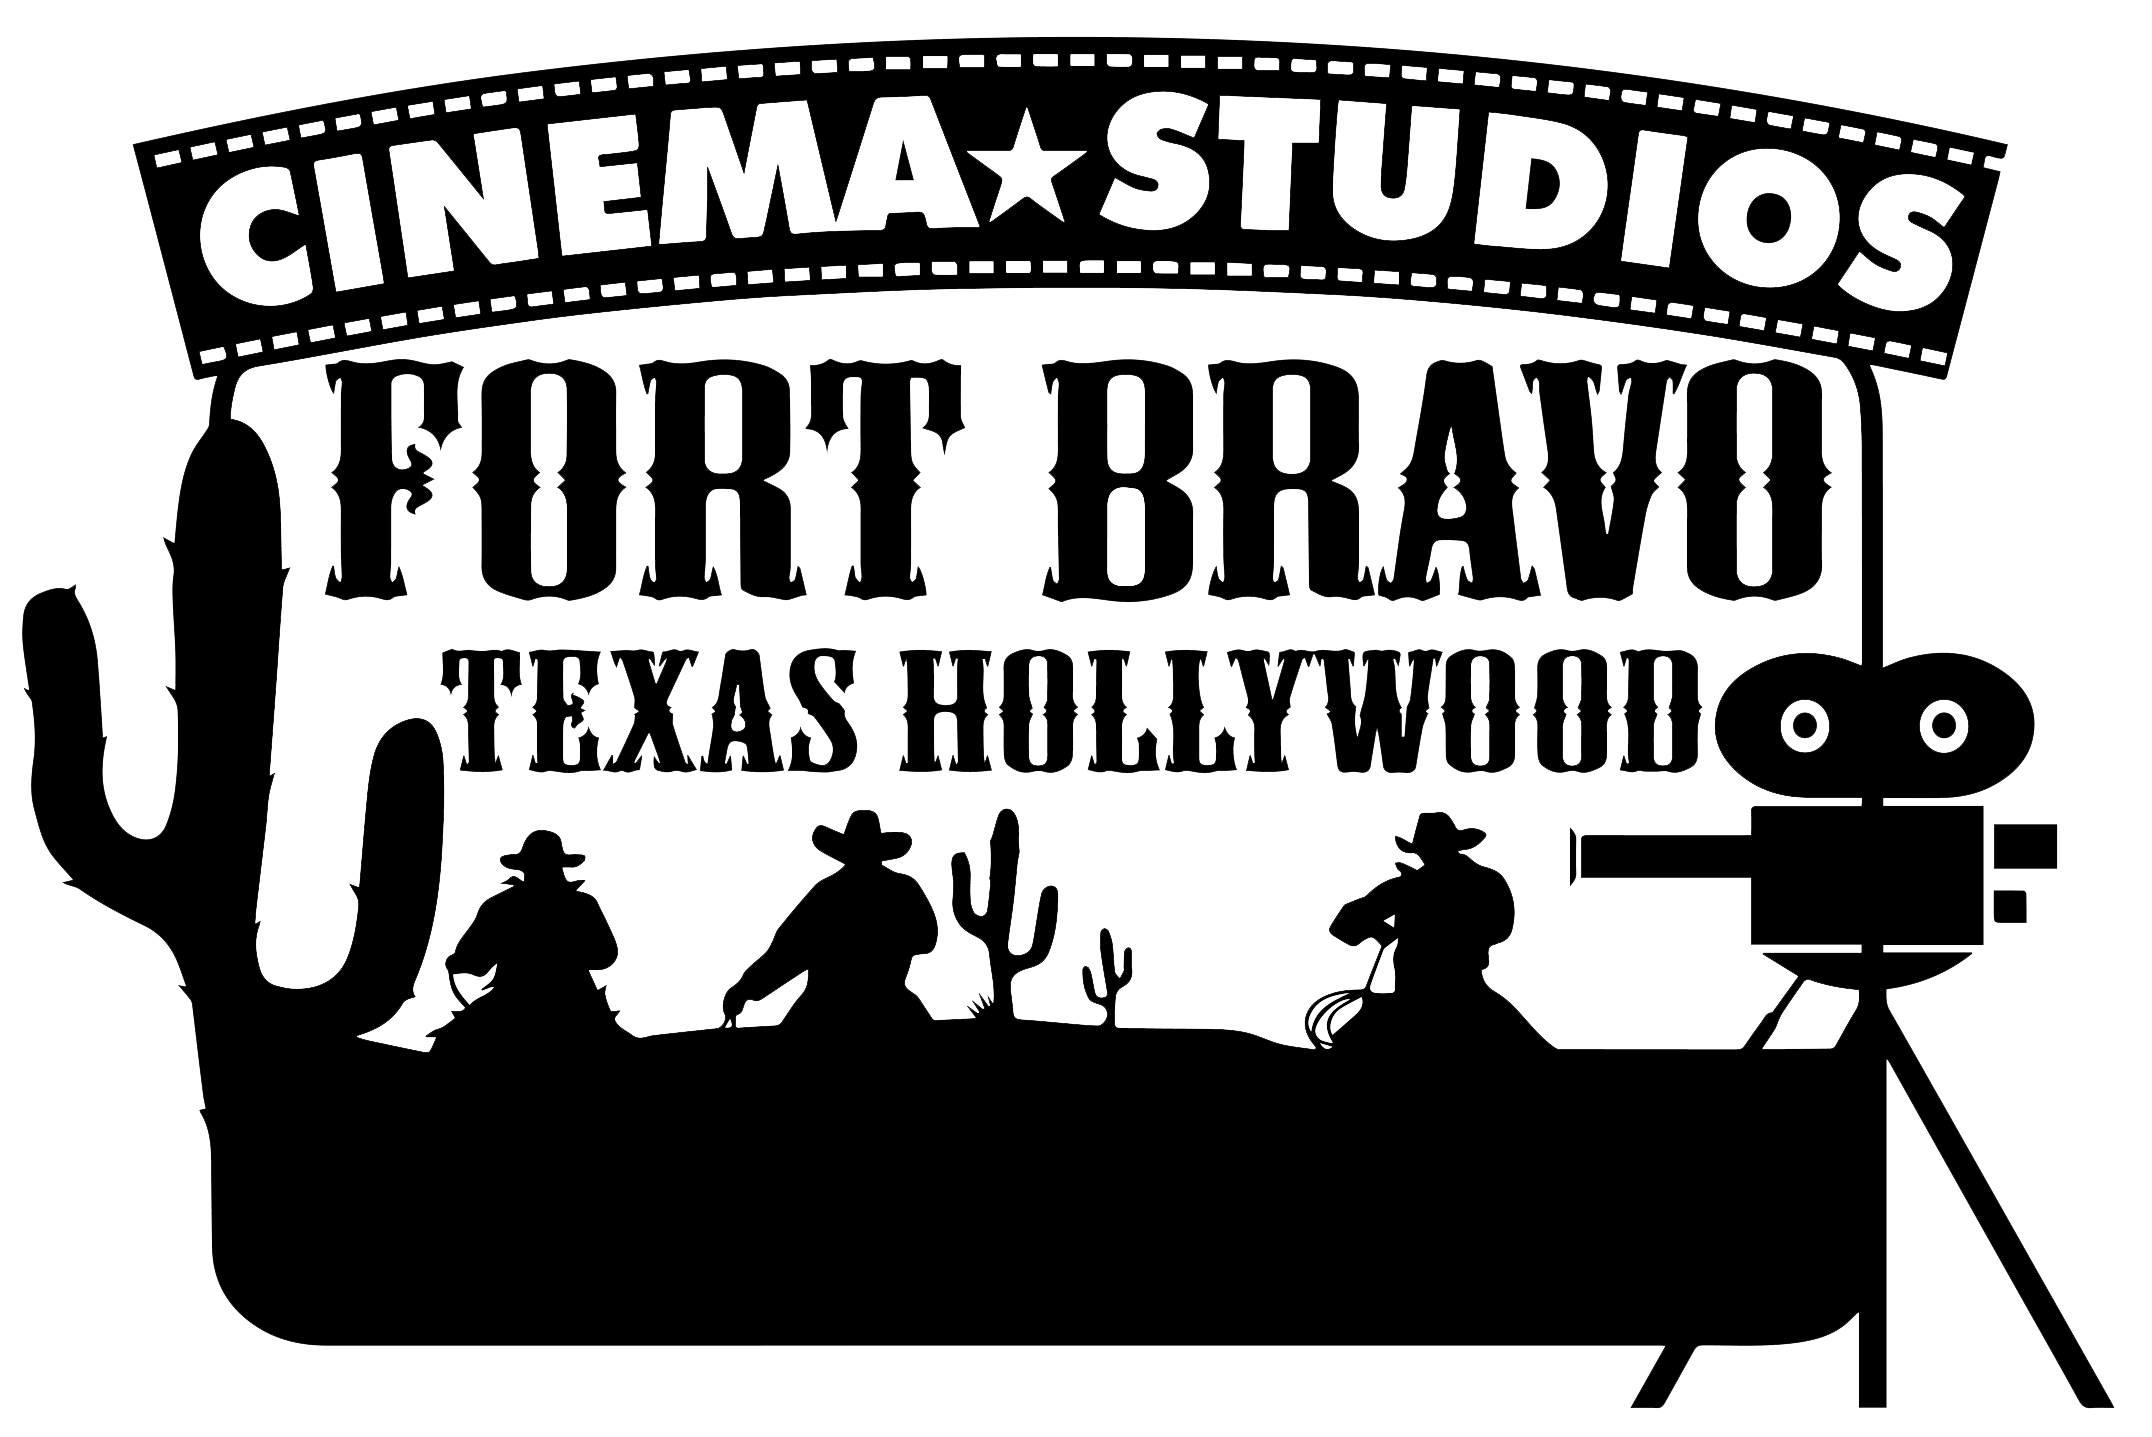 TICKETS FORT BRAVO